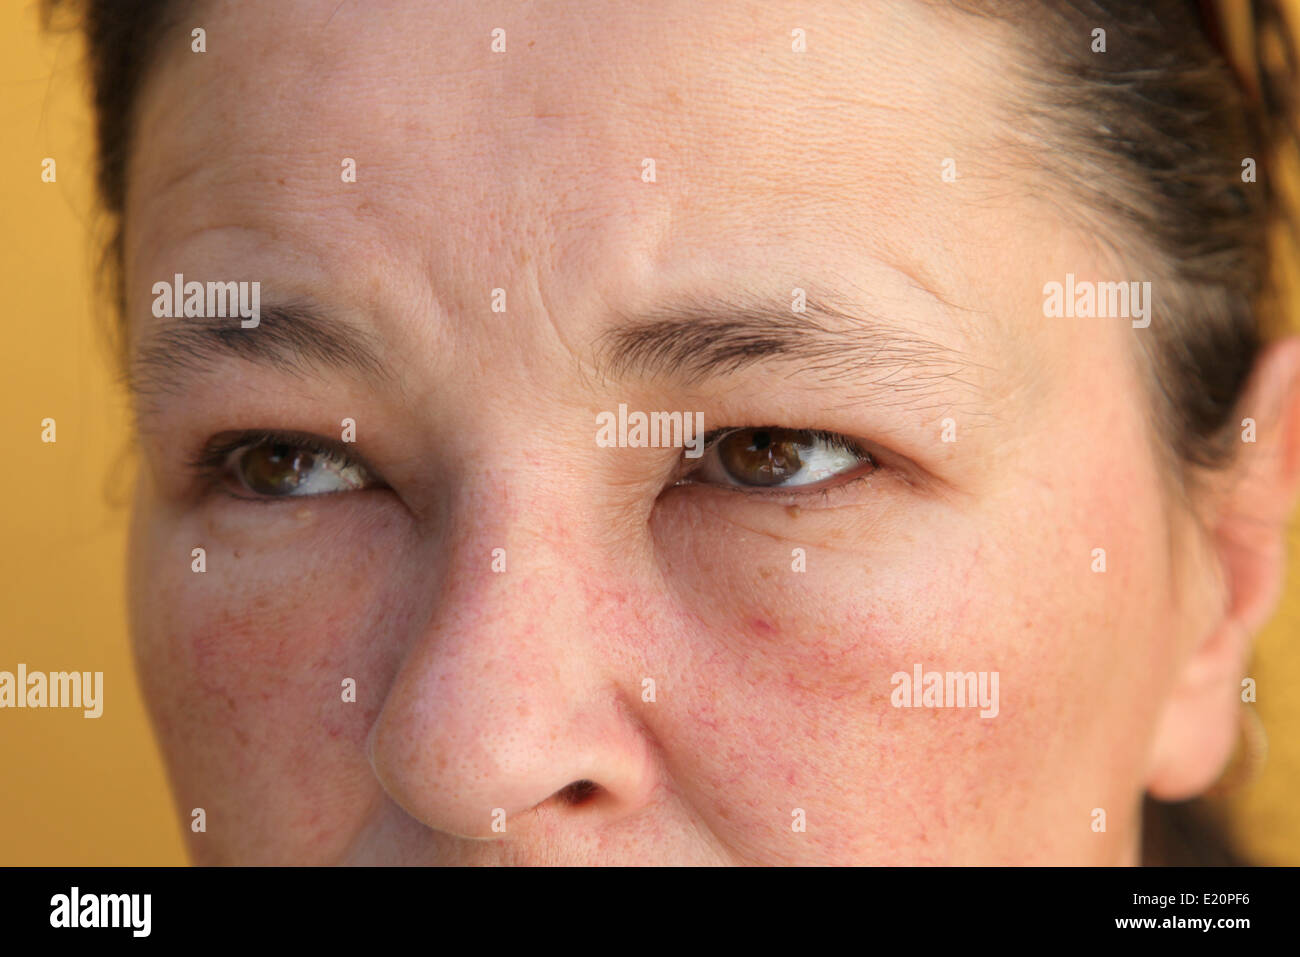 Allergies - swollen eyes and face Stock Photo